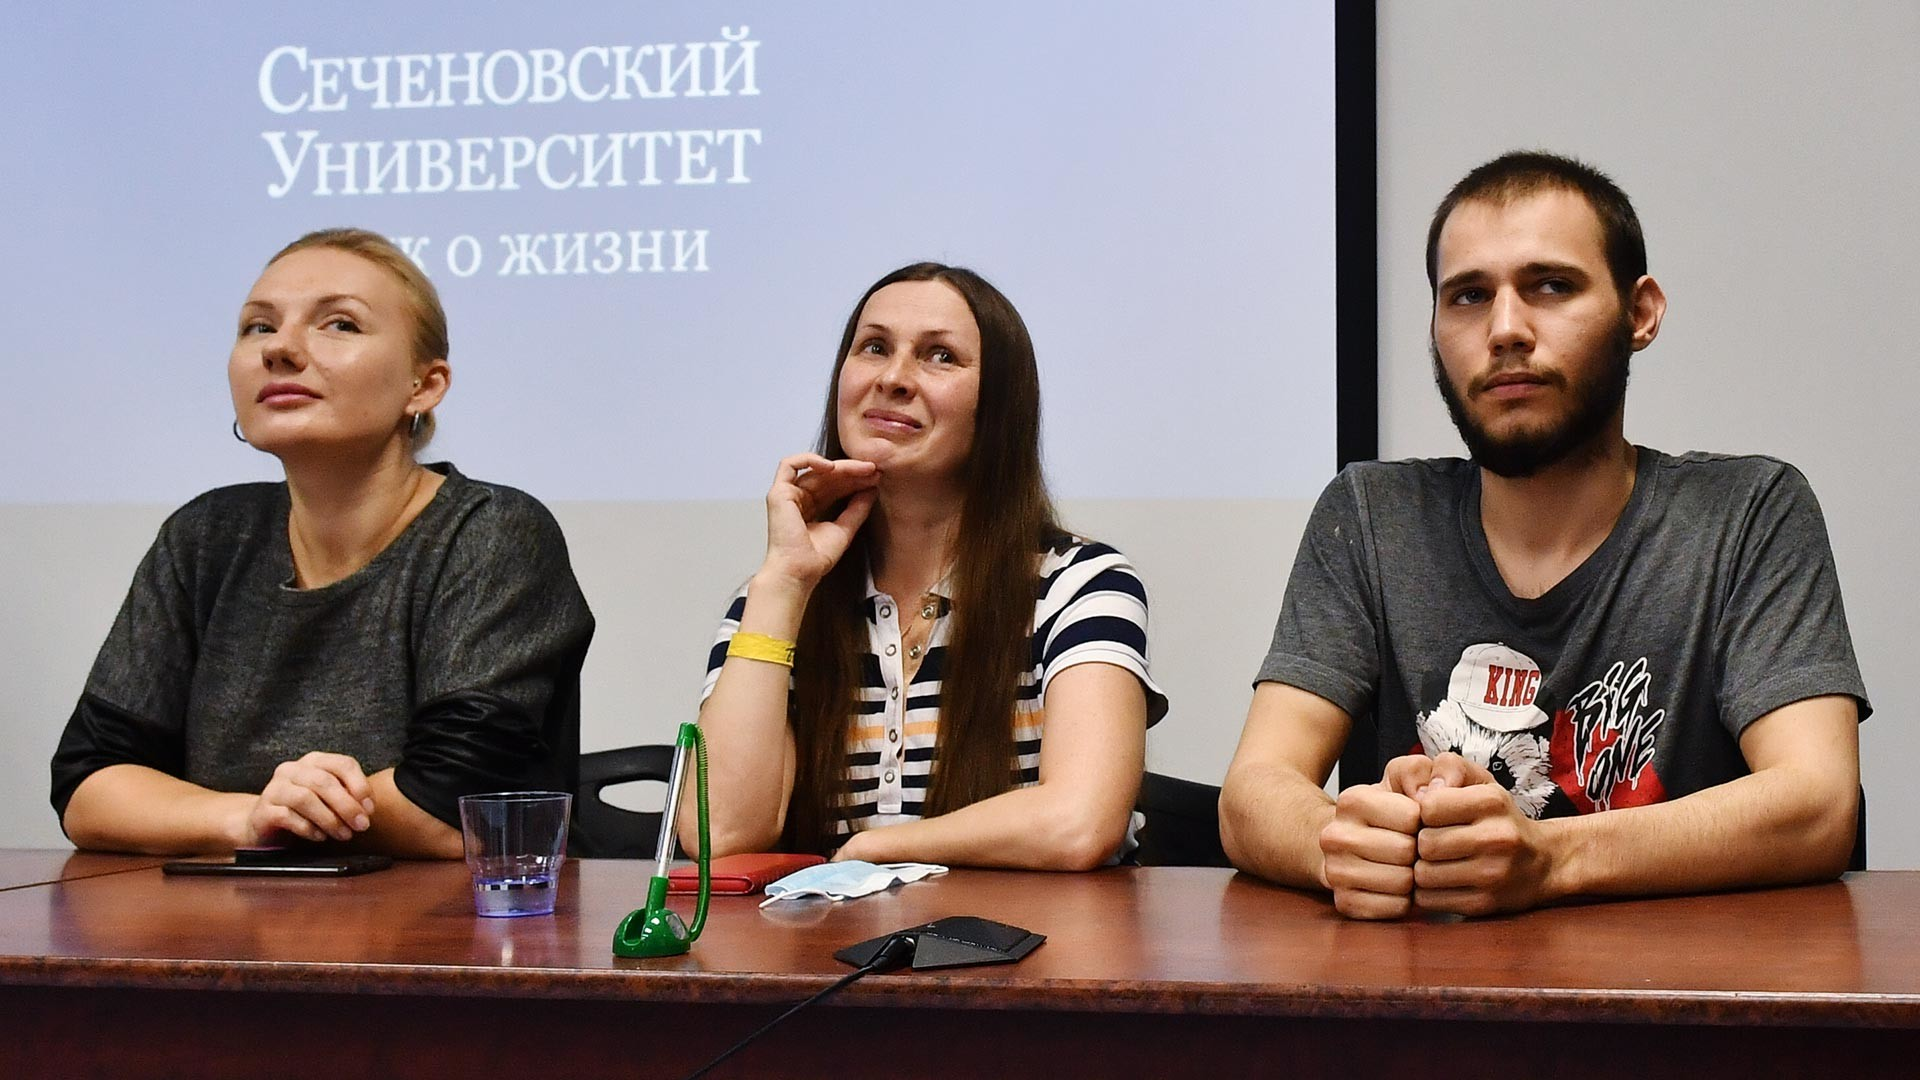 Three subjects of the research were present at the press conference, two female and one male.